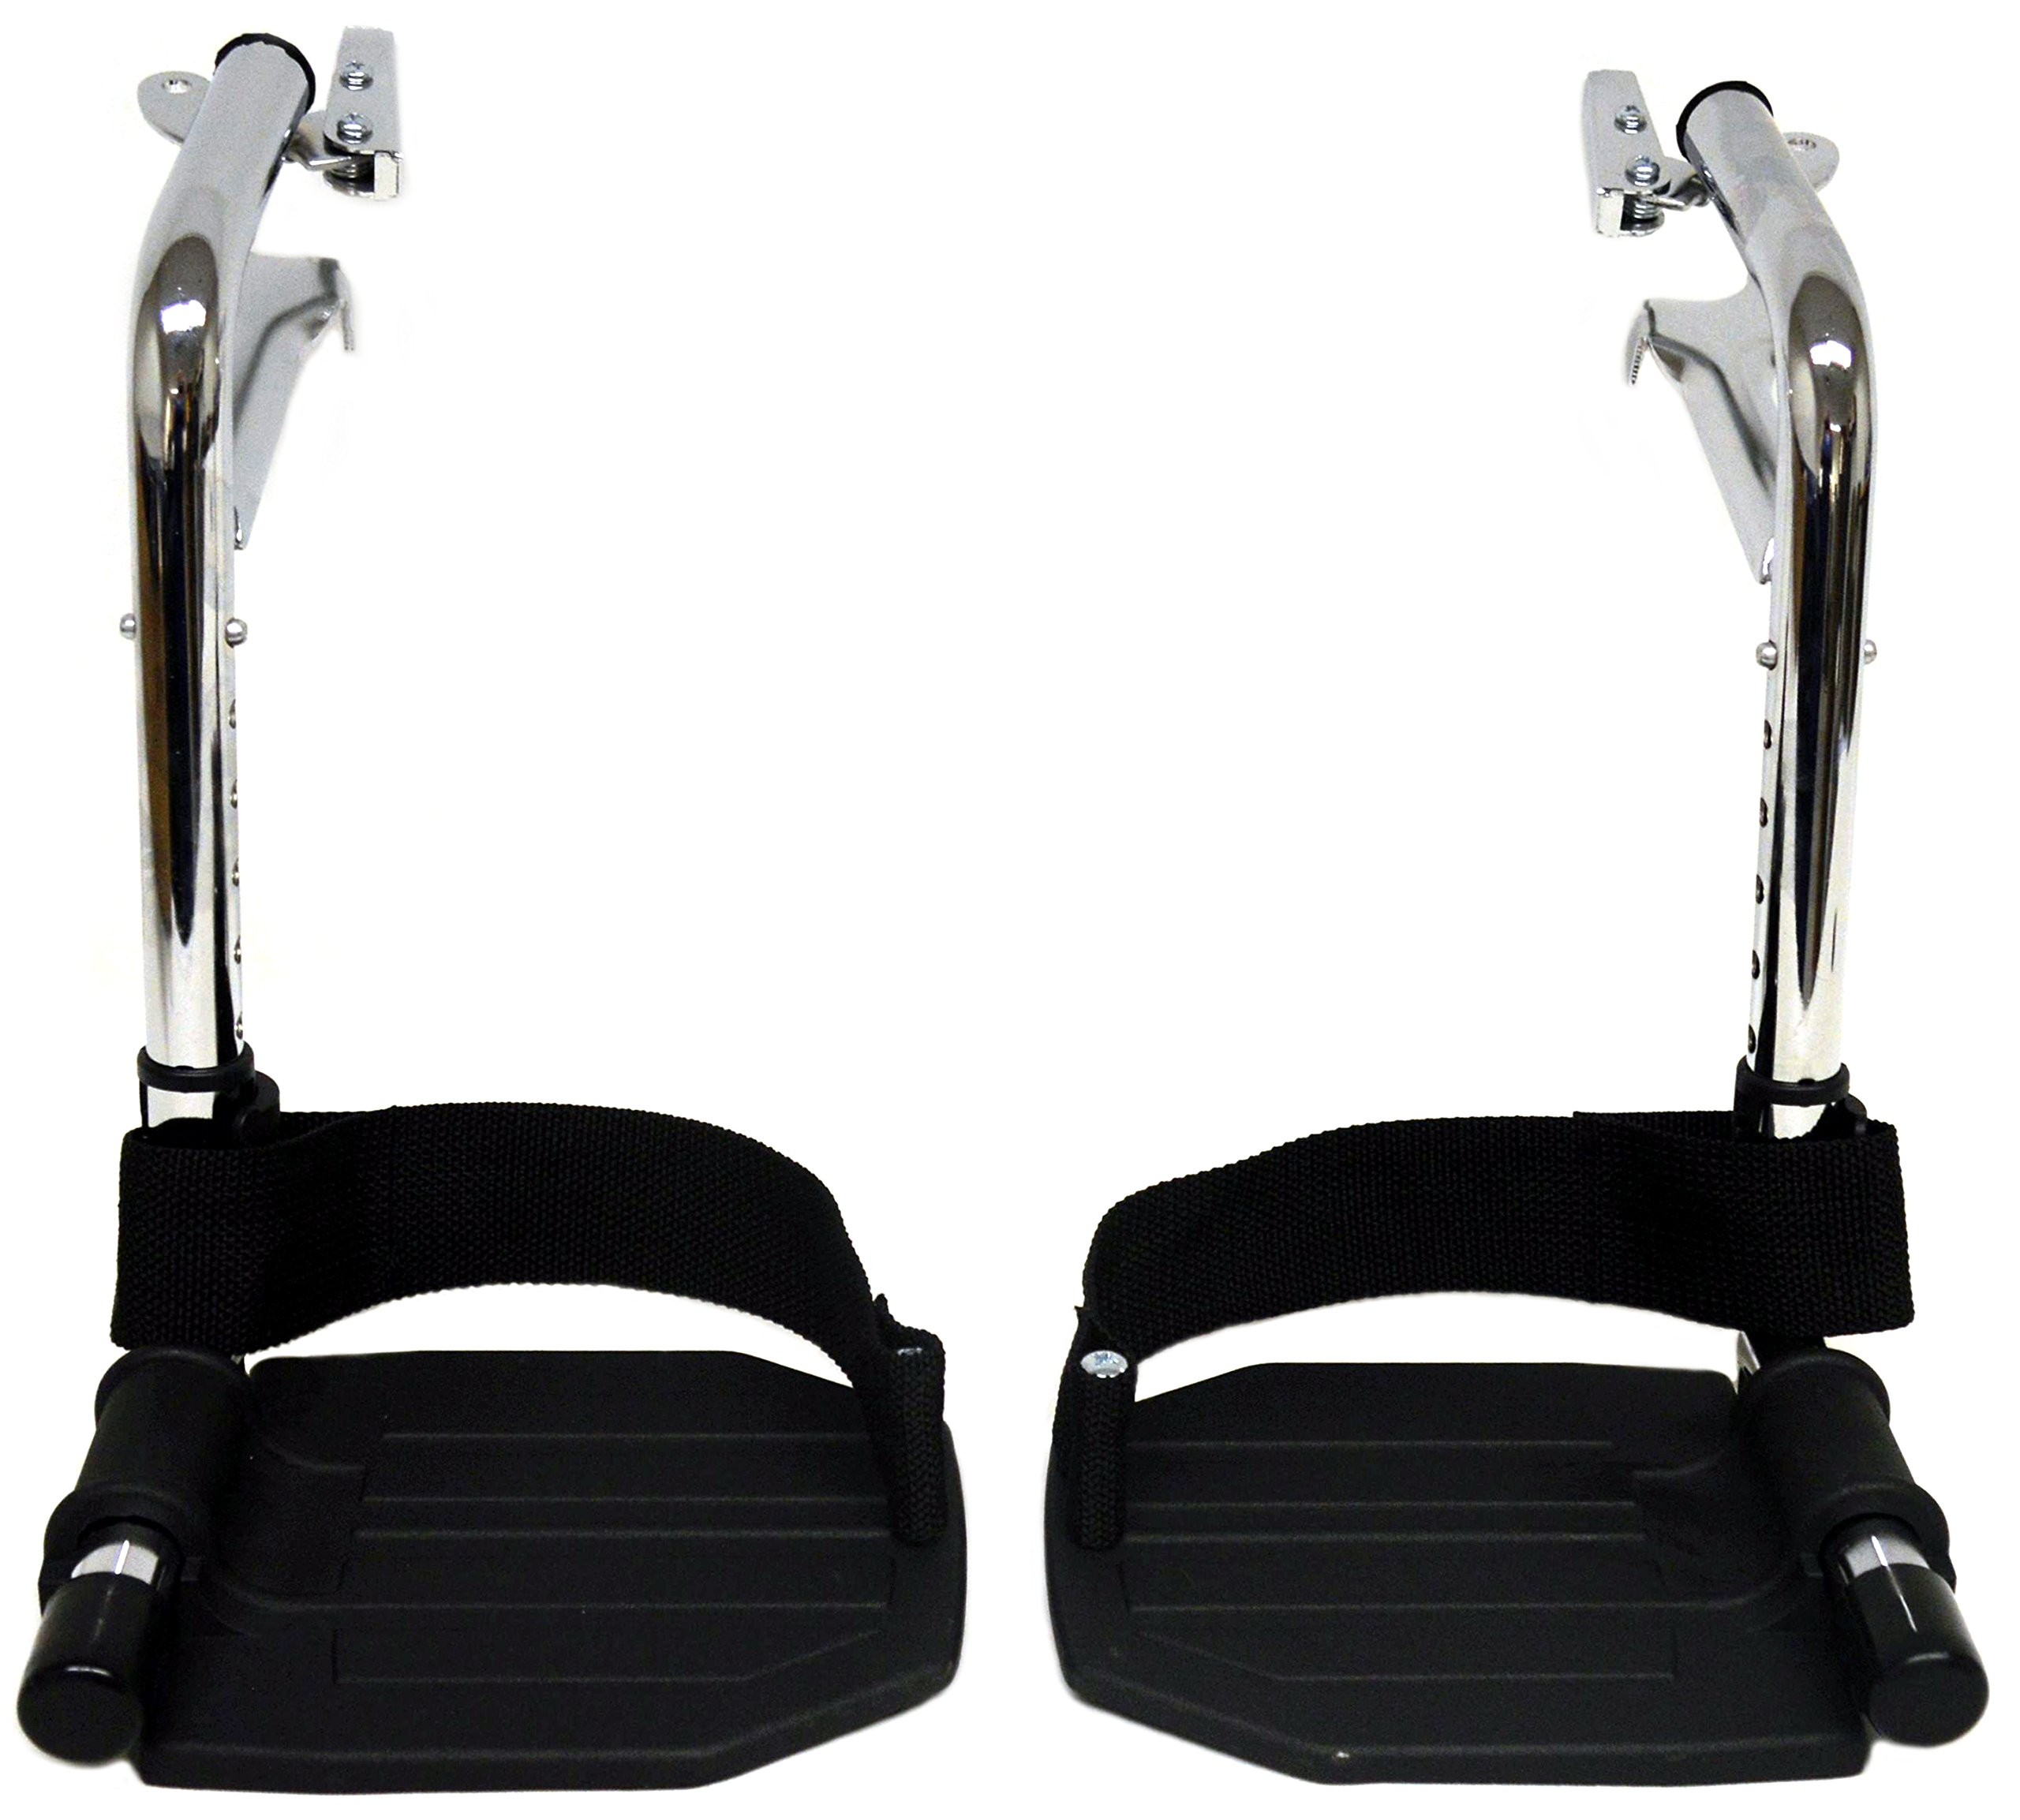 Heavy Duty Chrome Wheelchair Footrests with Black Aluminum Footplates & Heel Loops (Pair), 1-3/8'' Pin Spacing Fits Most Newer Medline, Drive, Invacare, E&J, ALCO & Other Manual Wheelchairs